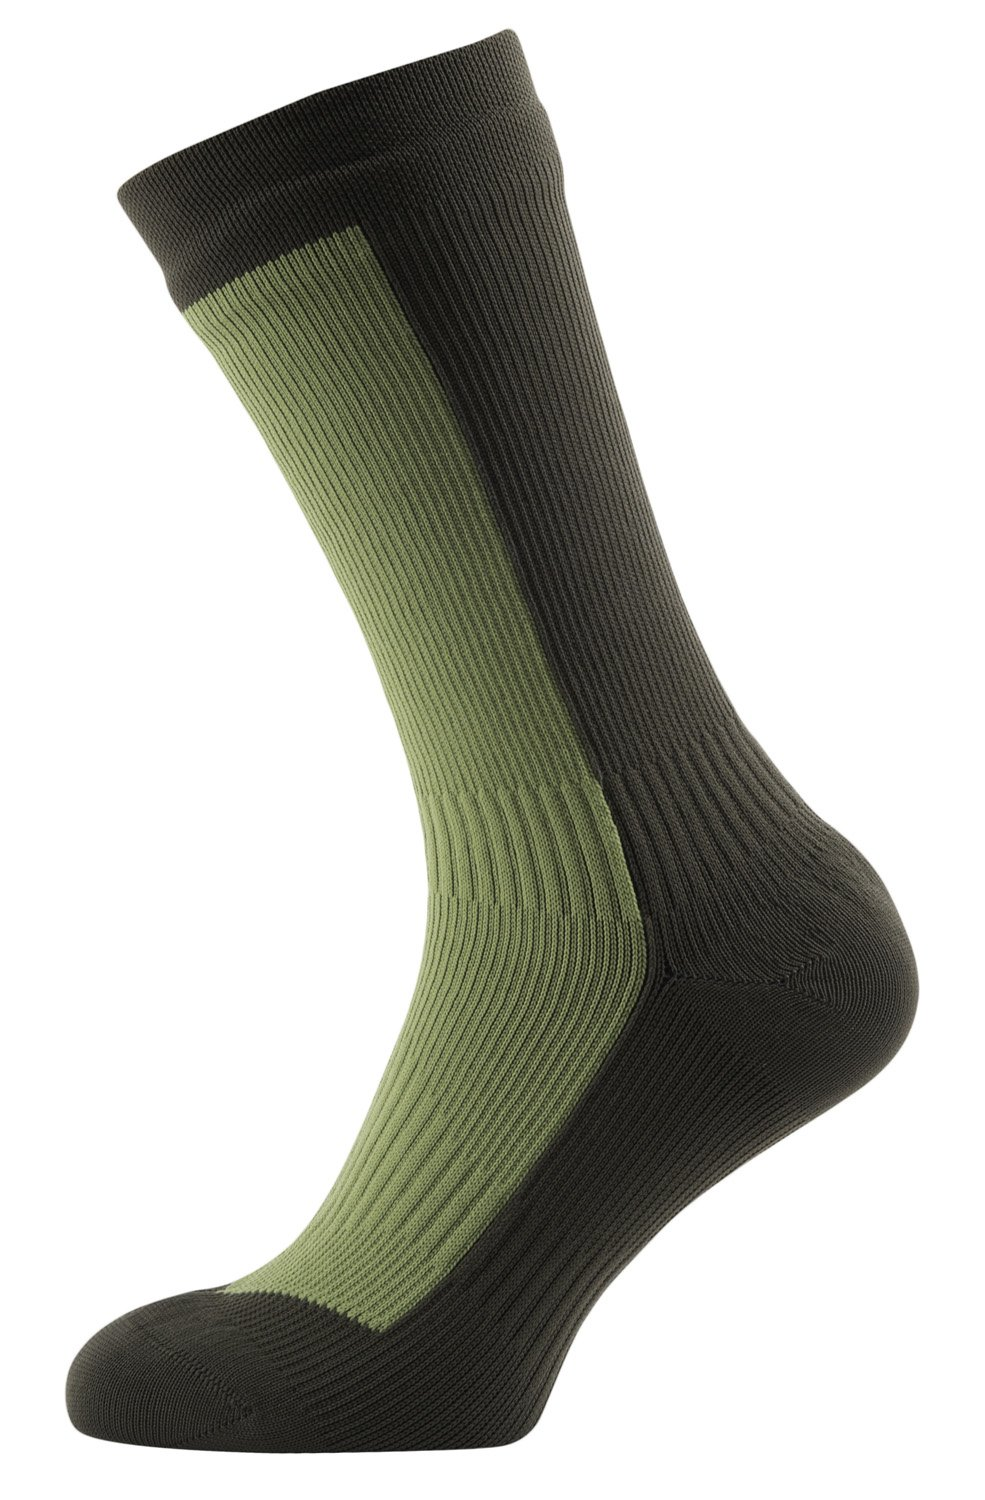 SEALSKINZ Waterproof Hiking Mid Length Sock